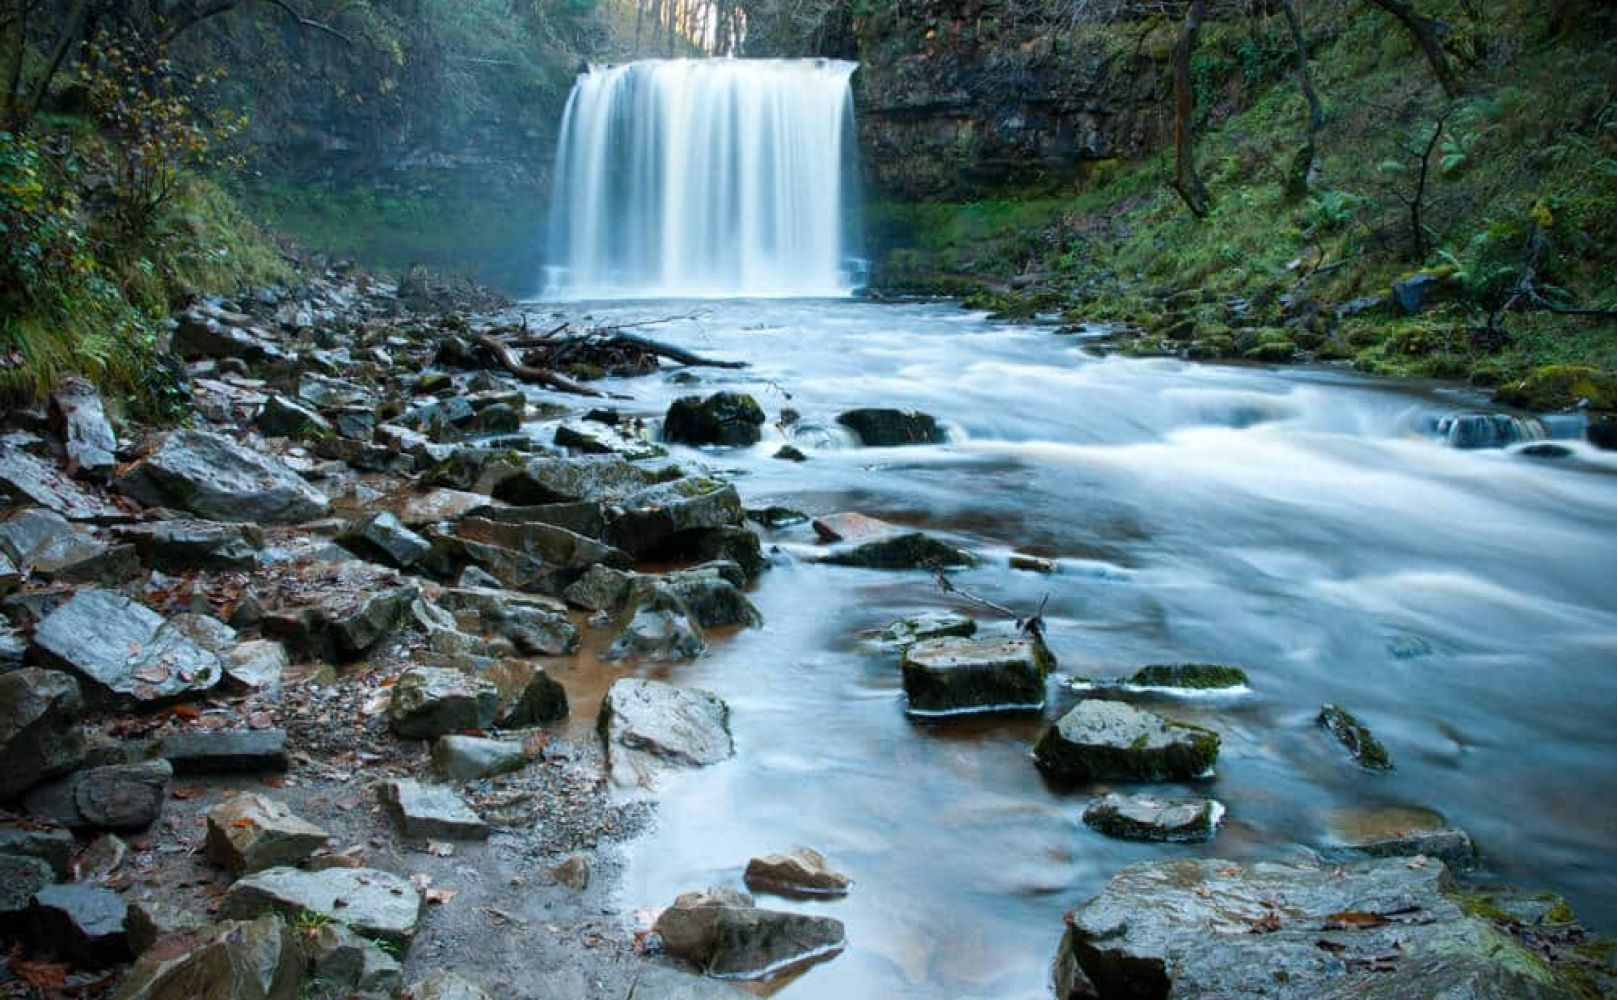 Sgwd Yr Eira Wasserfall, Brecon Beacons Nationalpark in Wales